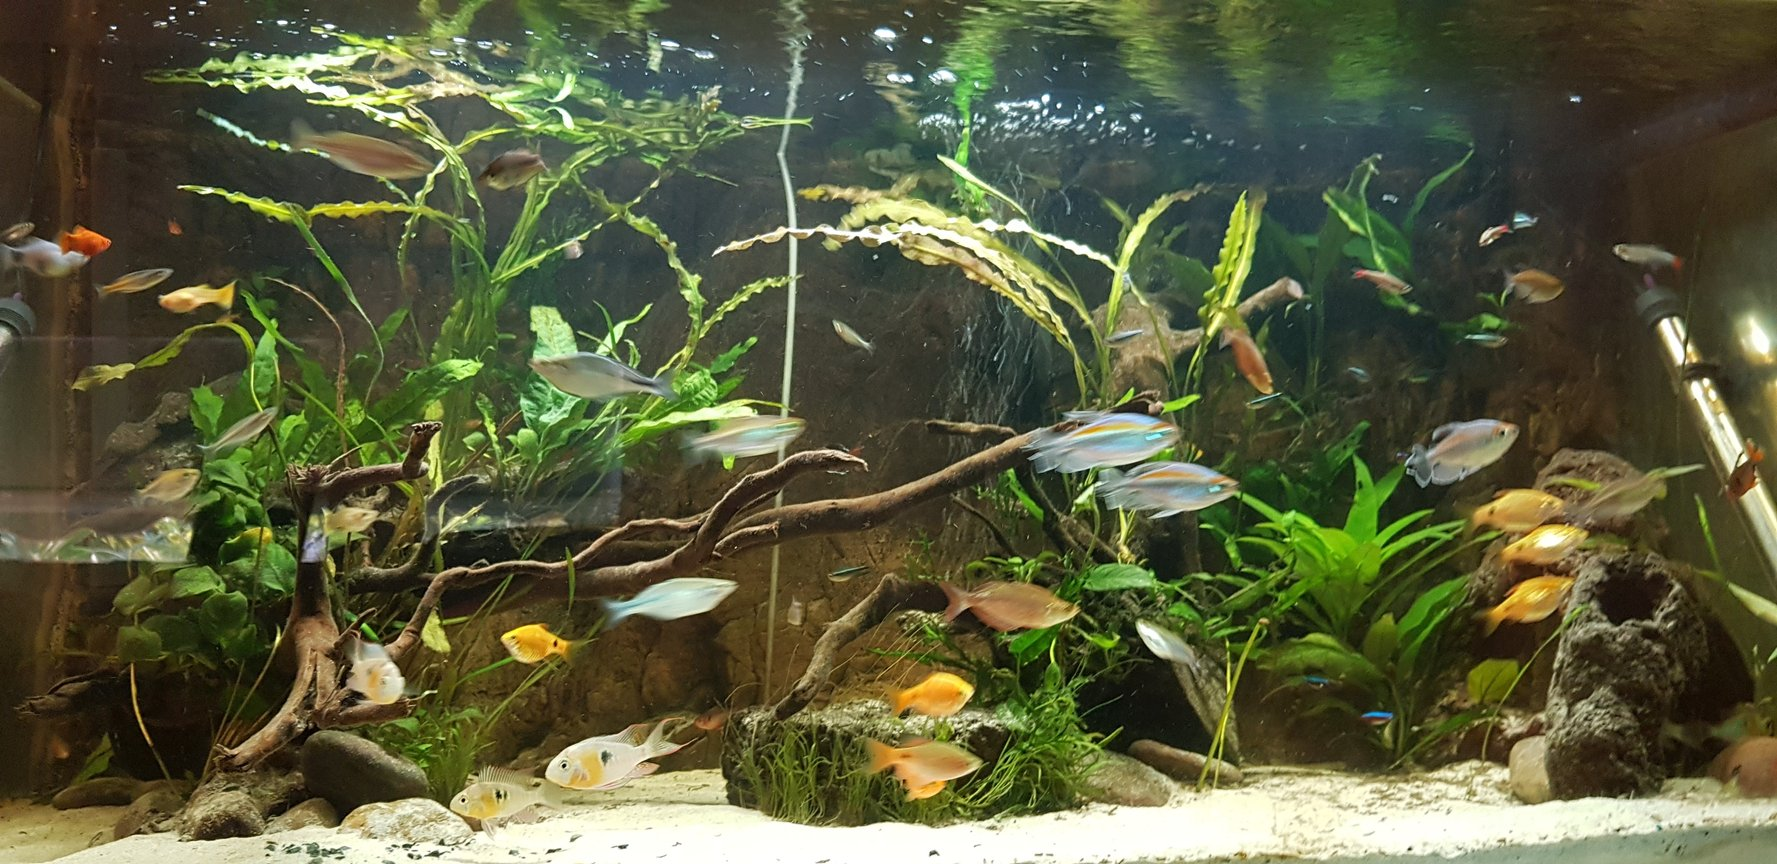 100 gallons planted tank (mostly live plants and fish) - The tank is slowly growing into it's own, roughly 2 months in